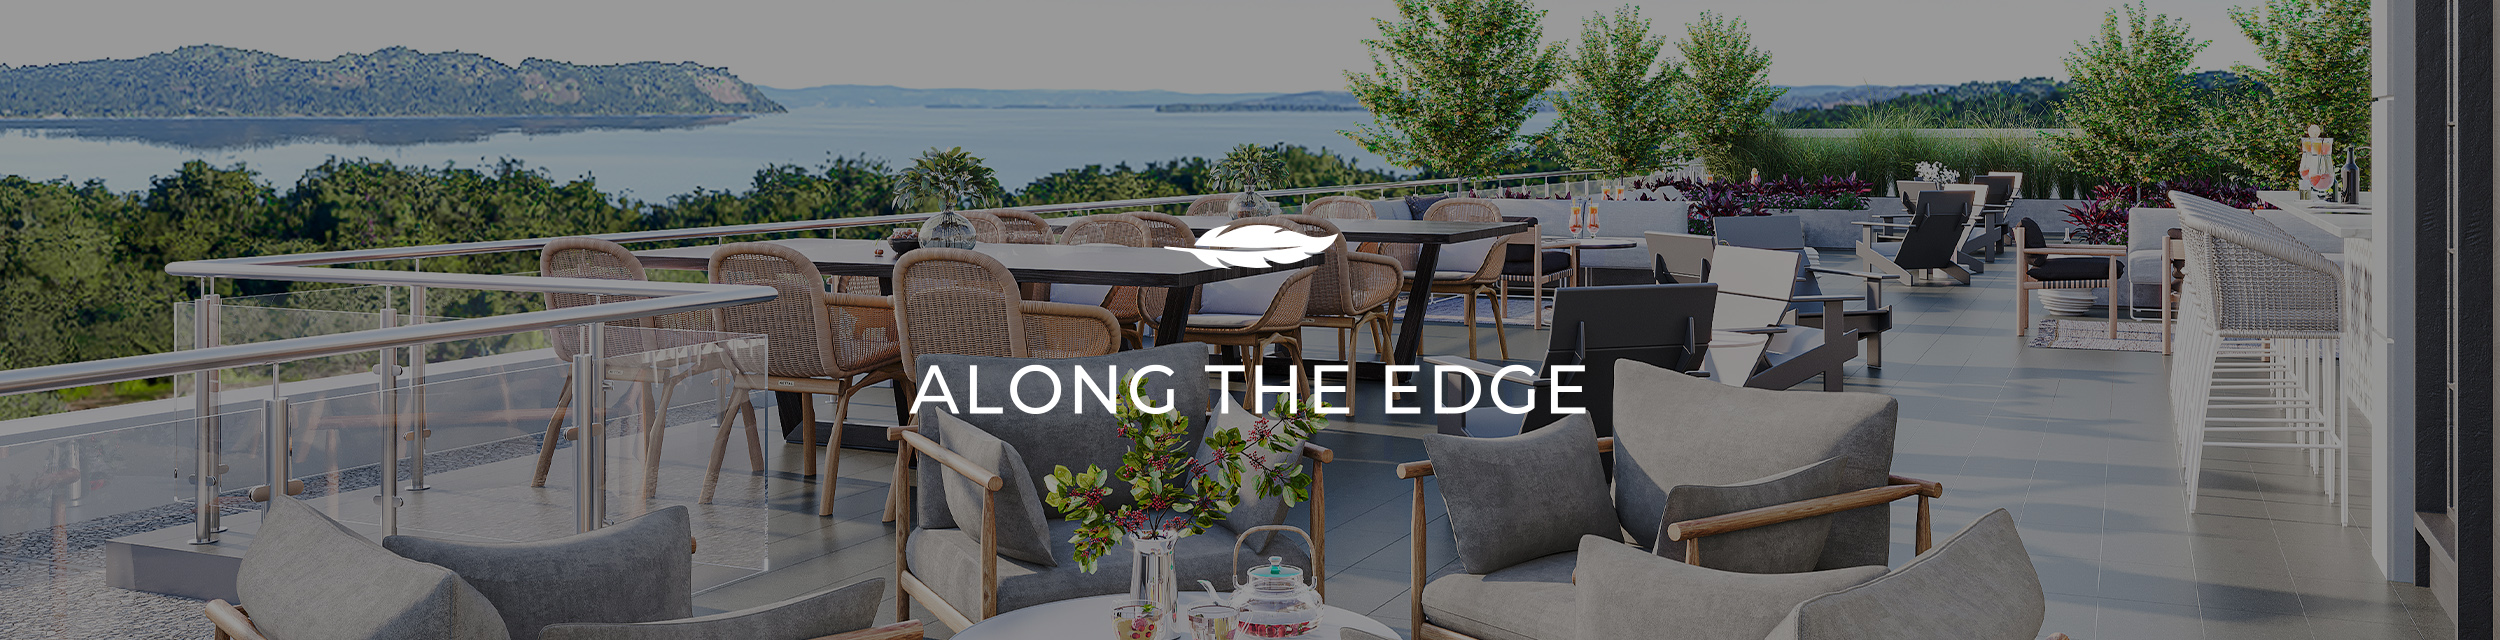 Emerson roof deck overlooking the water. Text: Along the Edge.